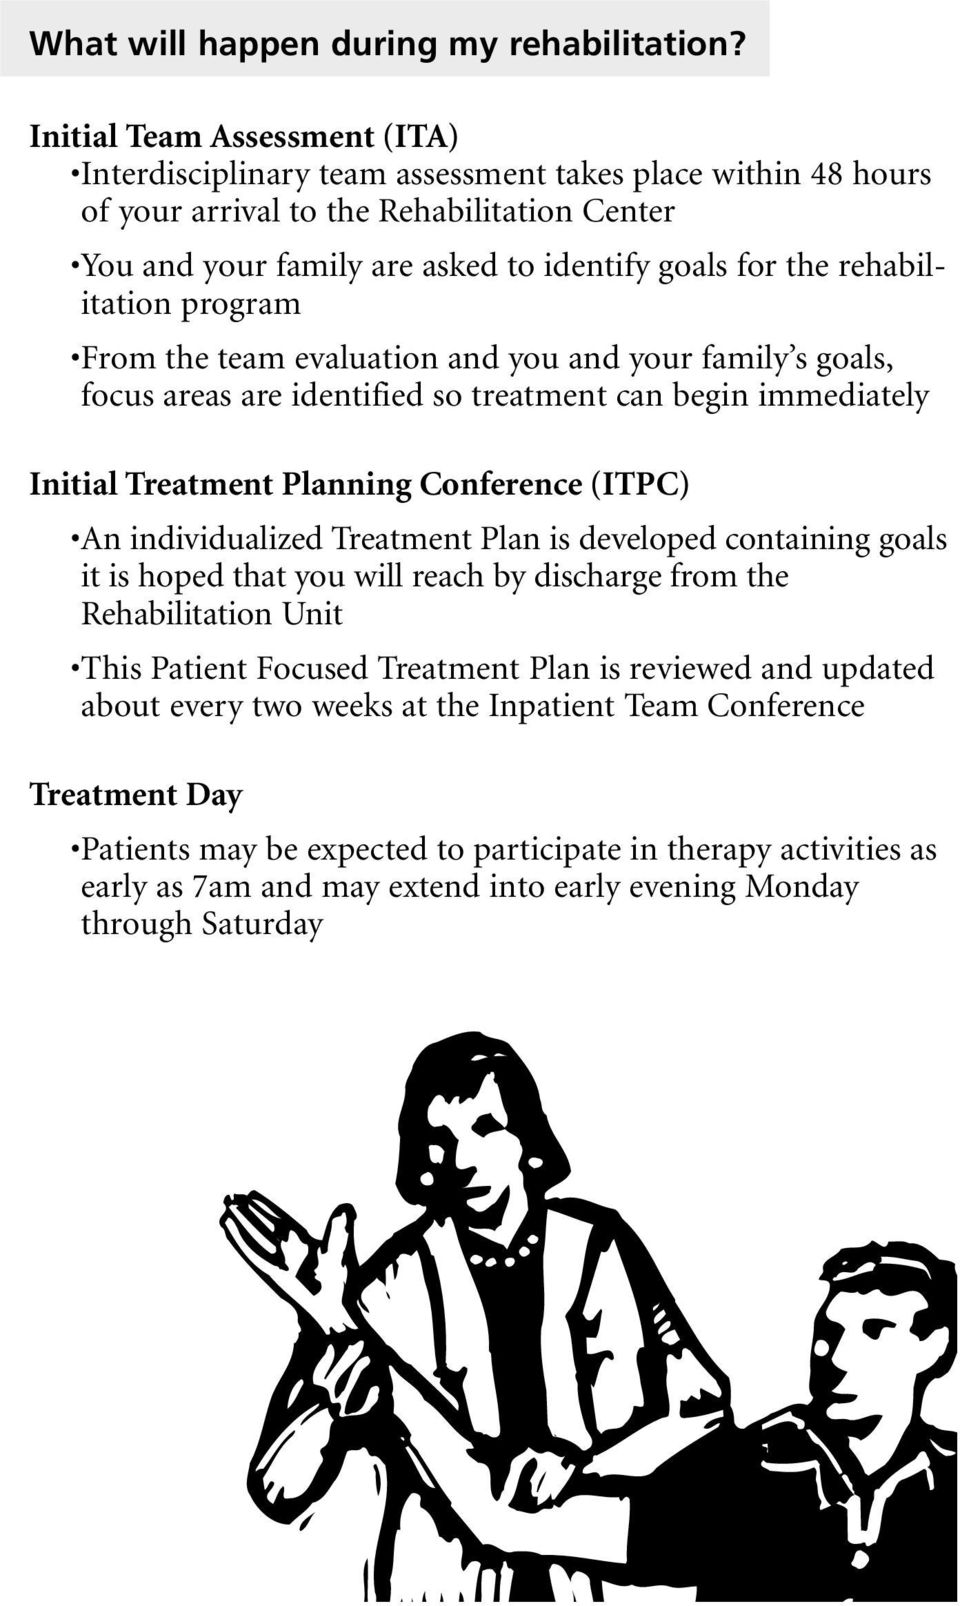 rehabilitation program From the team evaluation and you and your family s goals, focus areas are identified so treatment can begin immediately Initial Treatment Planning Conference (ITPC) An